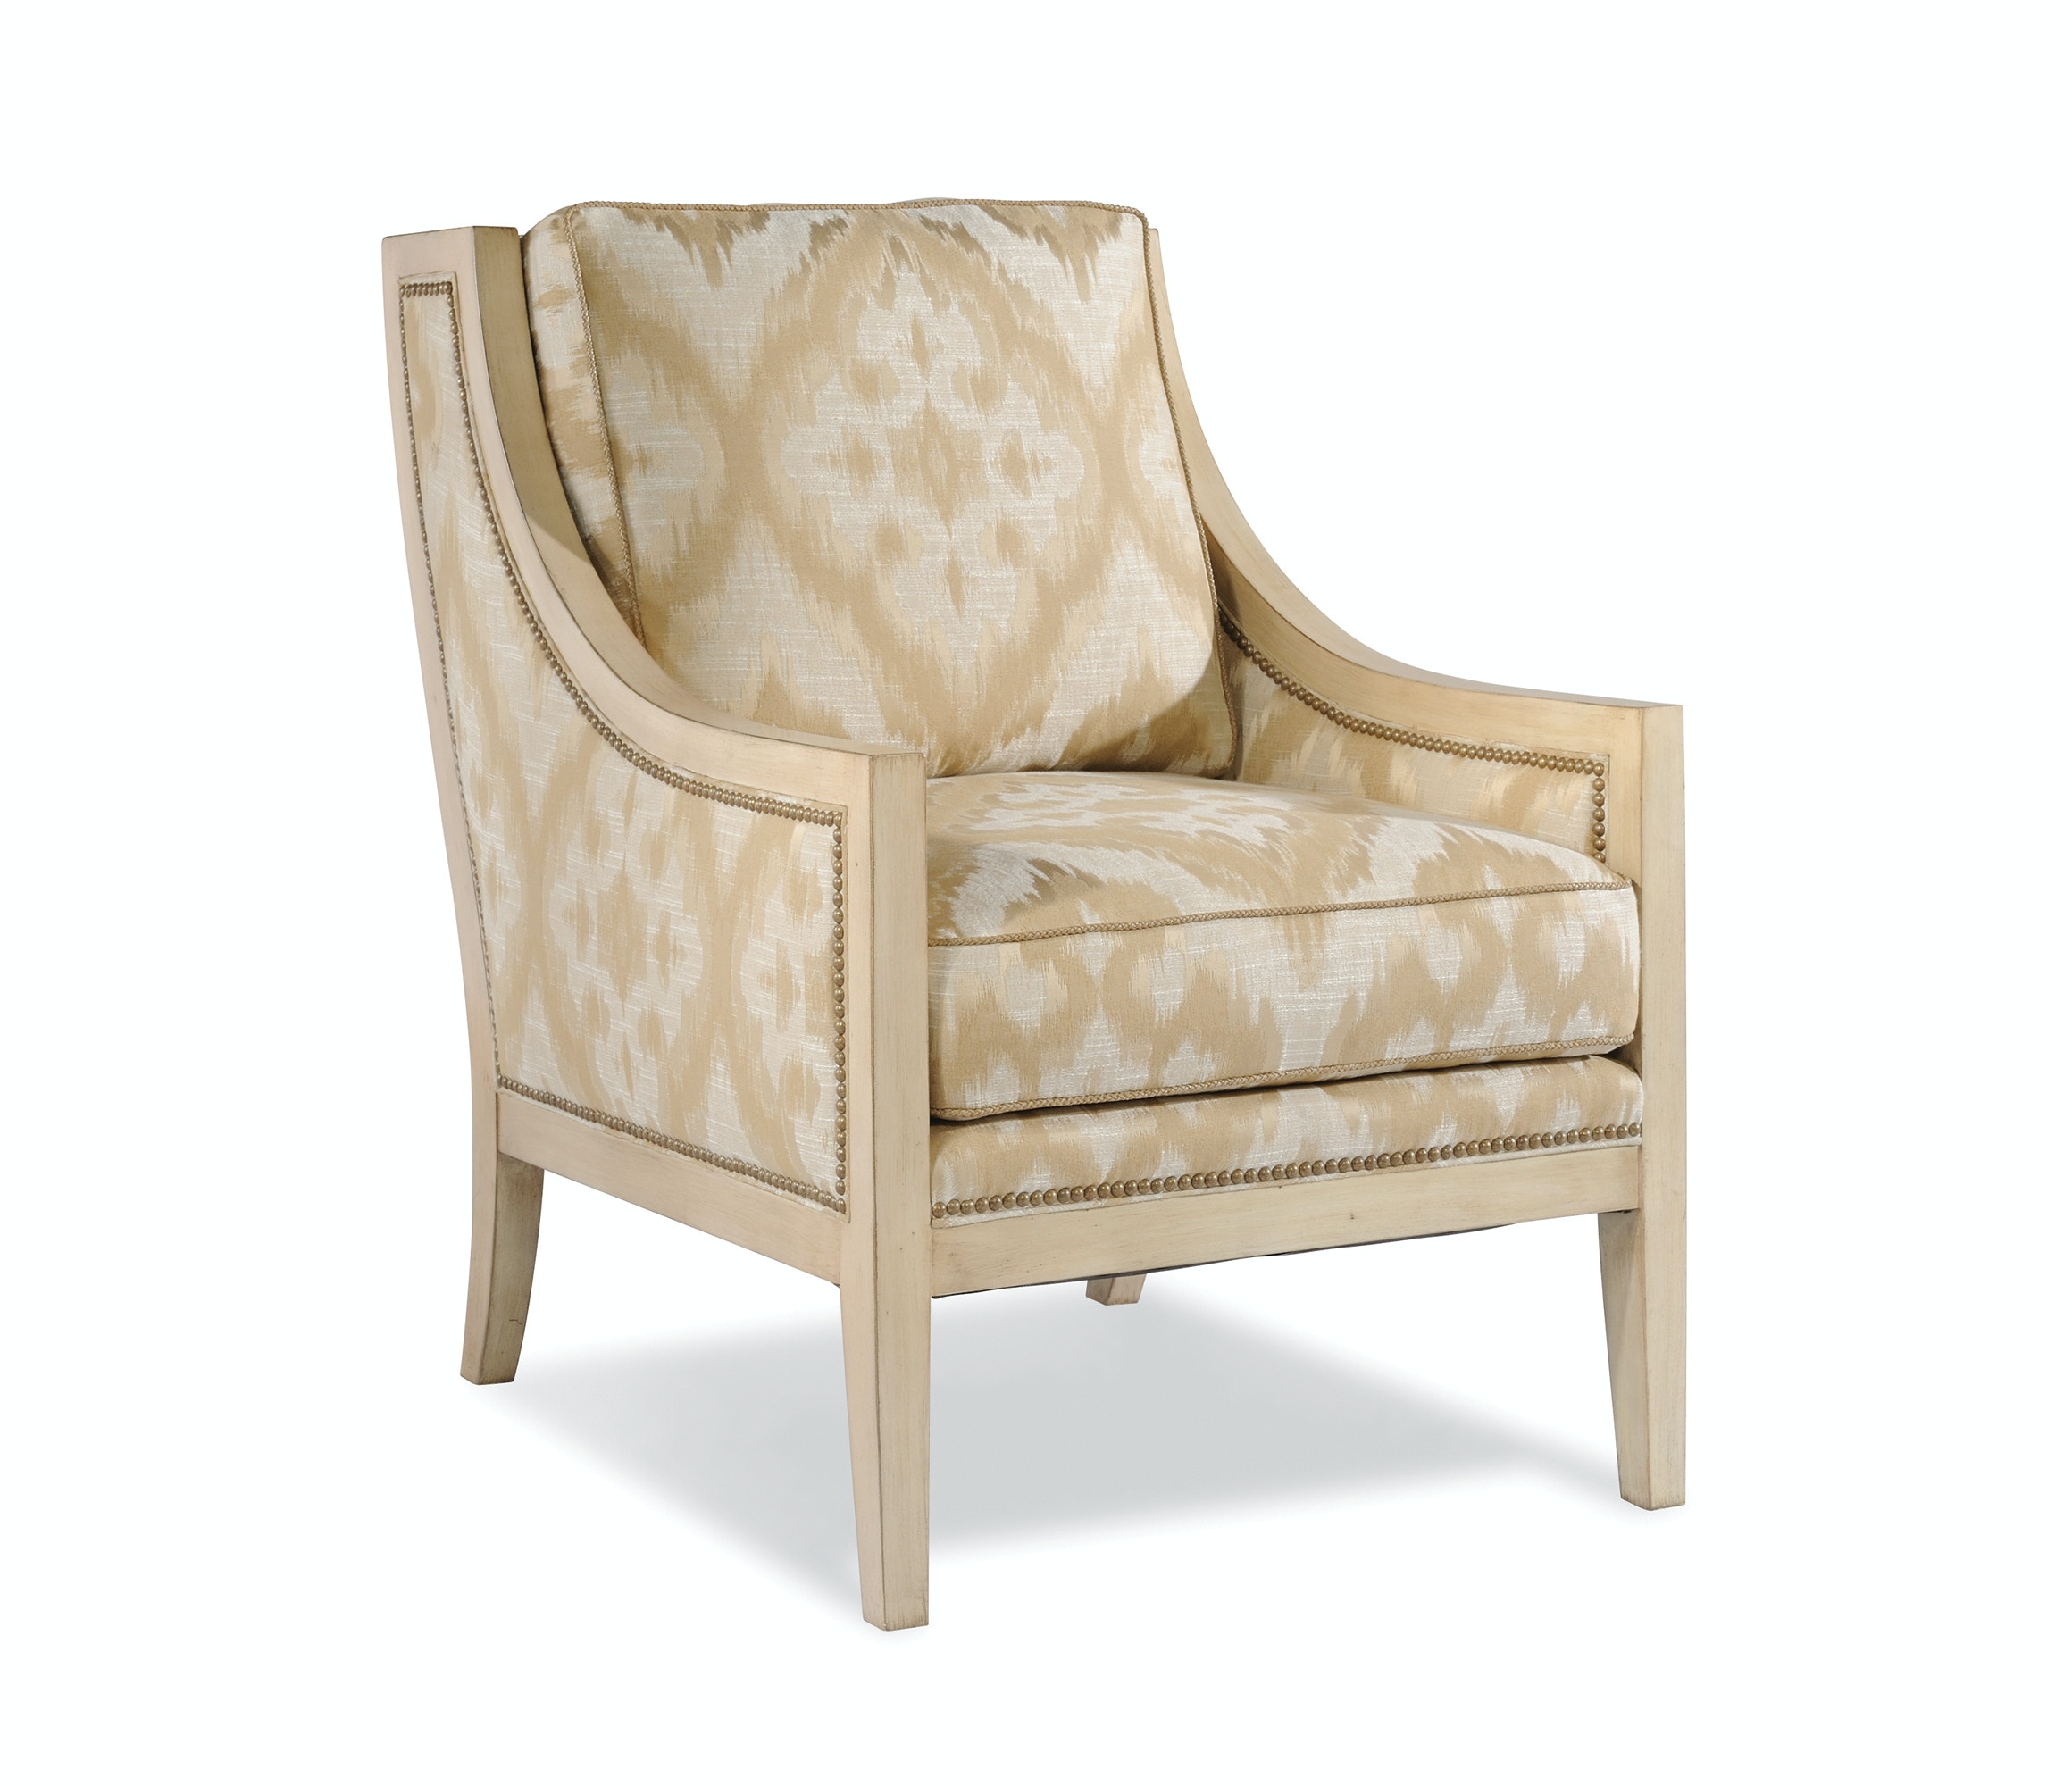 Charmant Taylor King Furniture Sabine Chair 4911 01